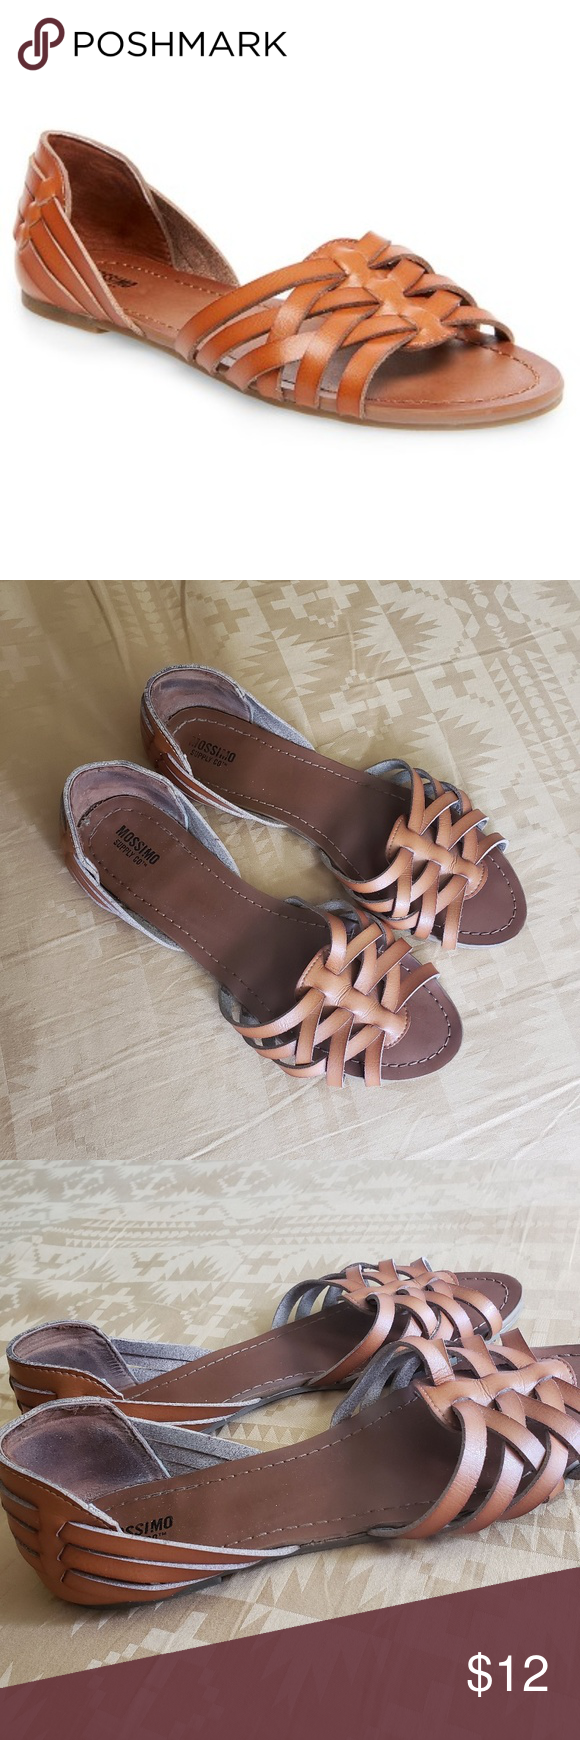 e7afb02c2d64 Mossimo Huarache Sandals Mossimo huarache sandals from Target in whiskey  faux leather. Cute with jeans